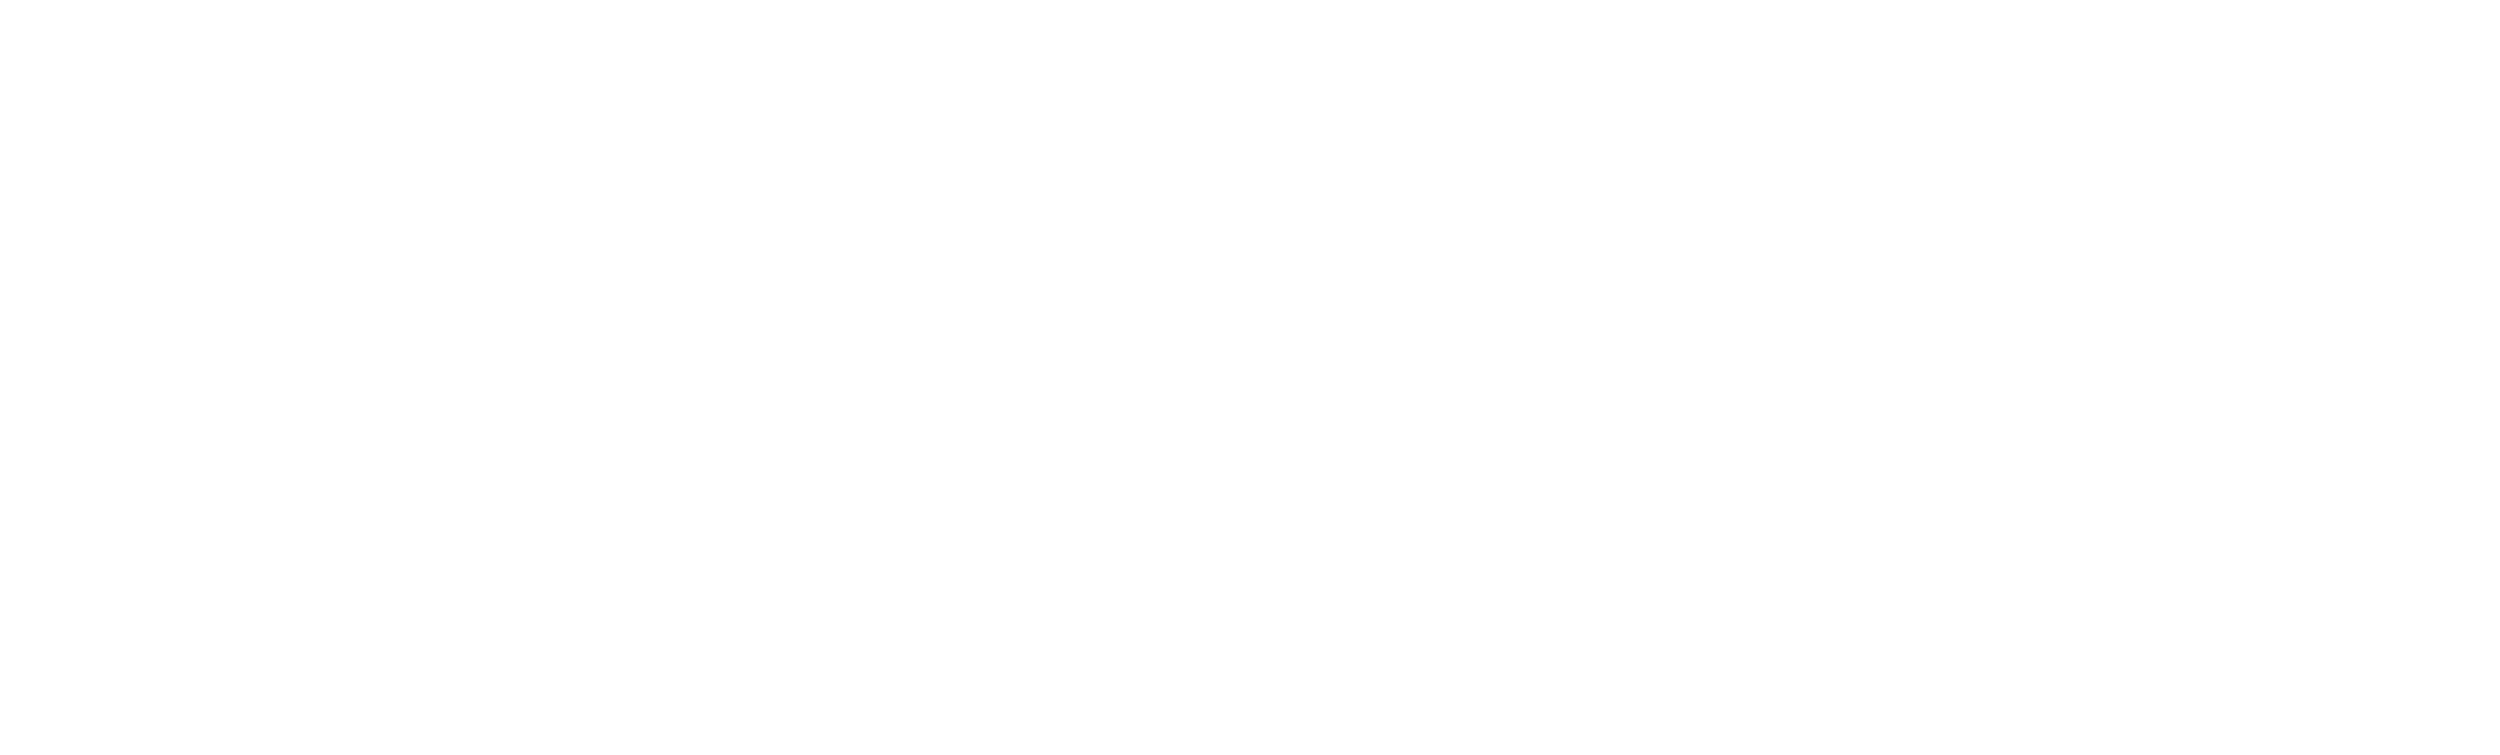 Ashley Hylbert Photography Portrait Website